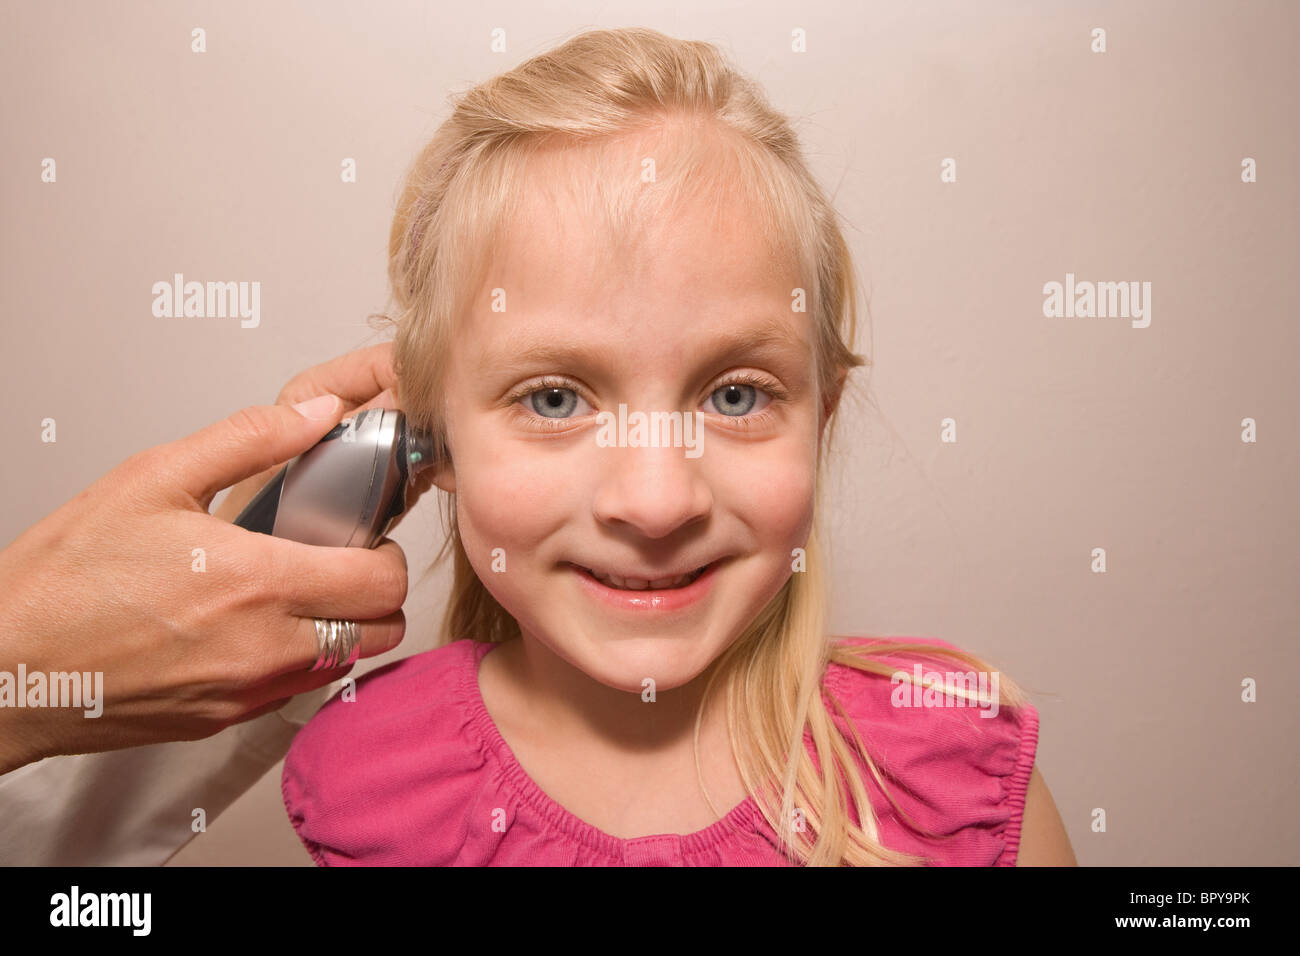 doctor takes temperature of a young girl thermometer in ear electronic wellness checkup fever - Stock Image